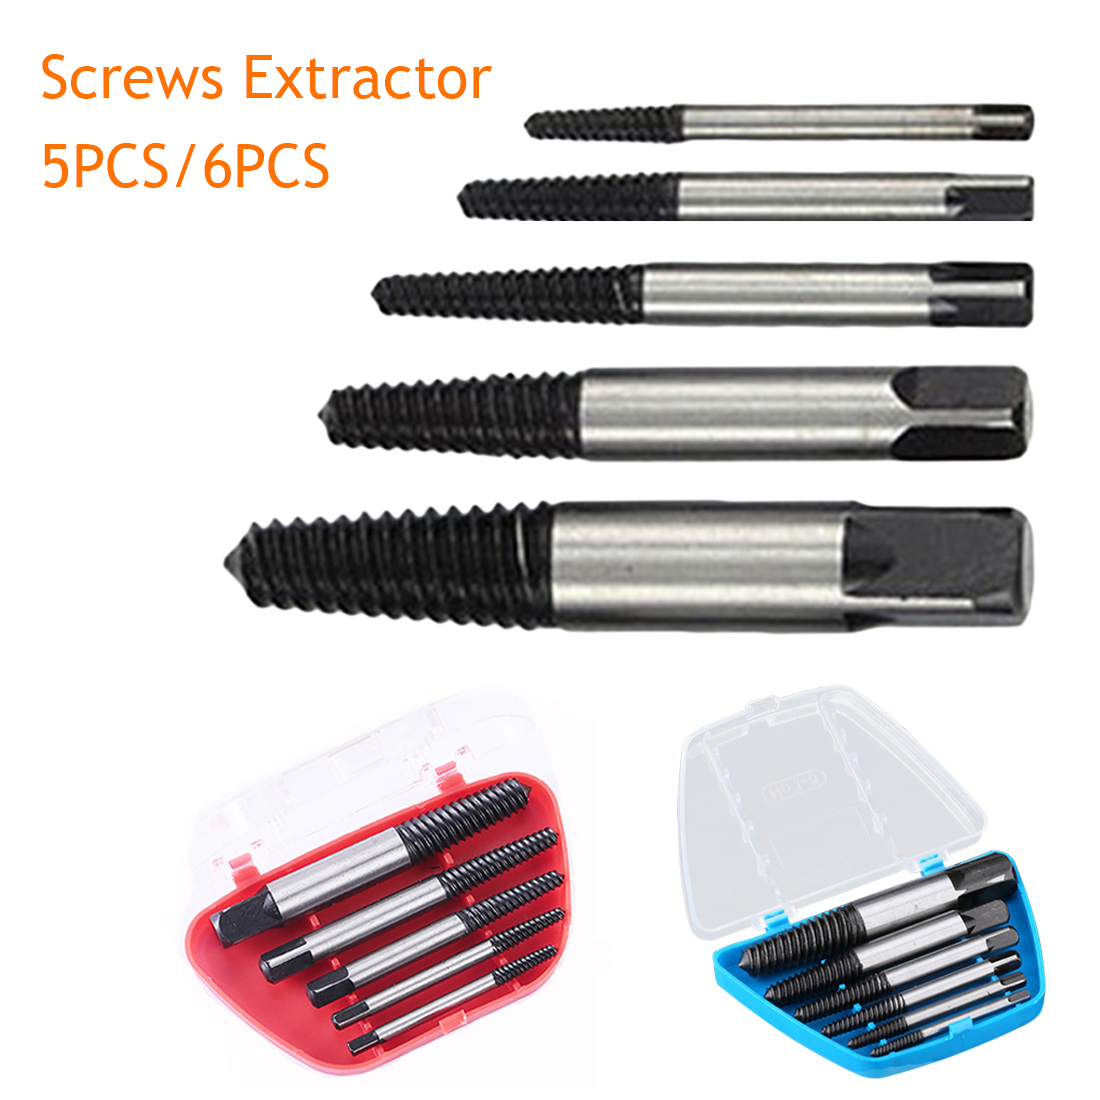 Screw Extractor Broken Bolt Remover Drill Guide Bits Set Drill Bits Easy Out Remover With Case 5pcs/6pcs